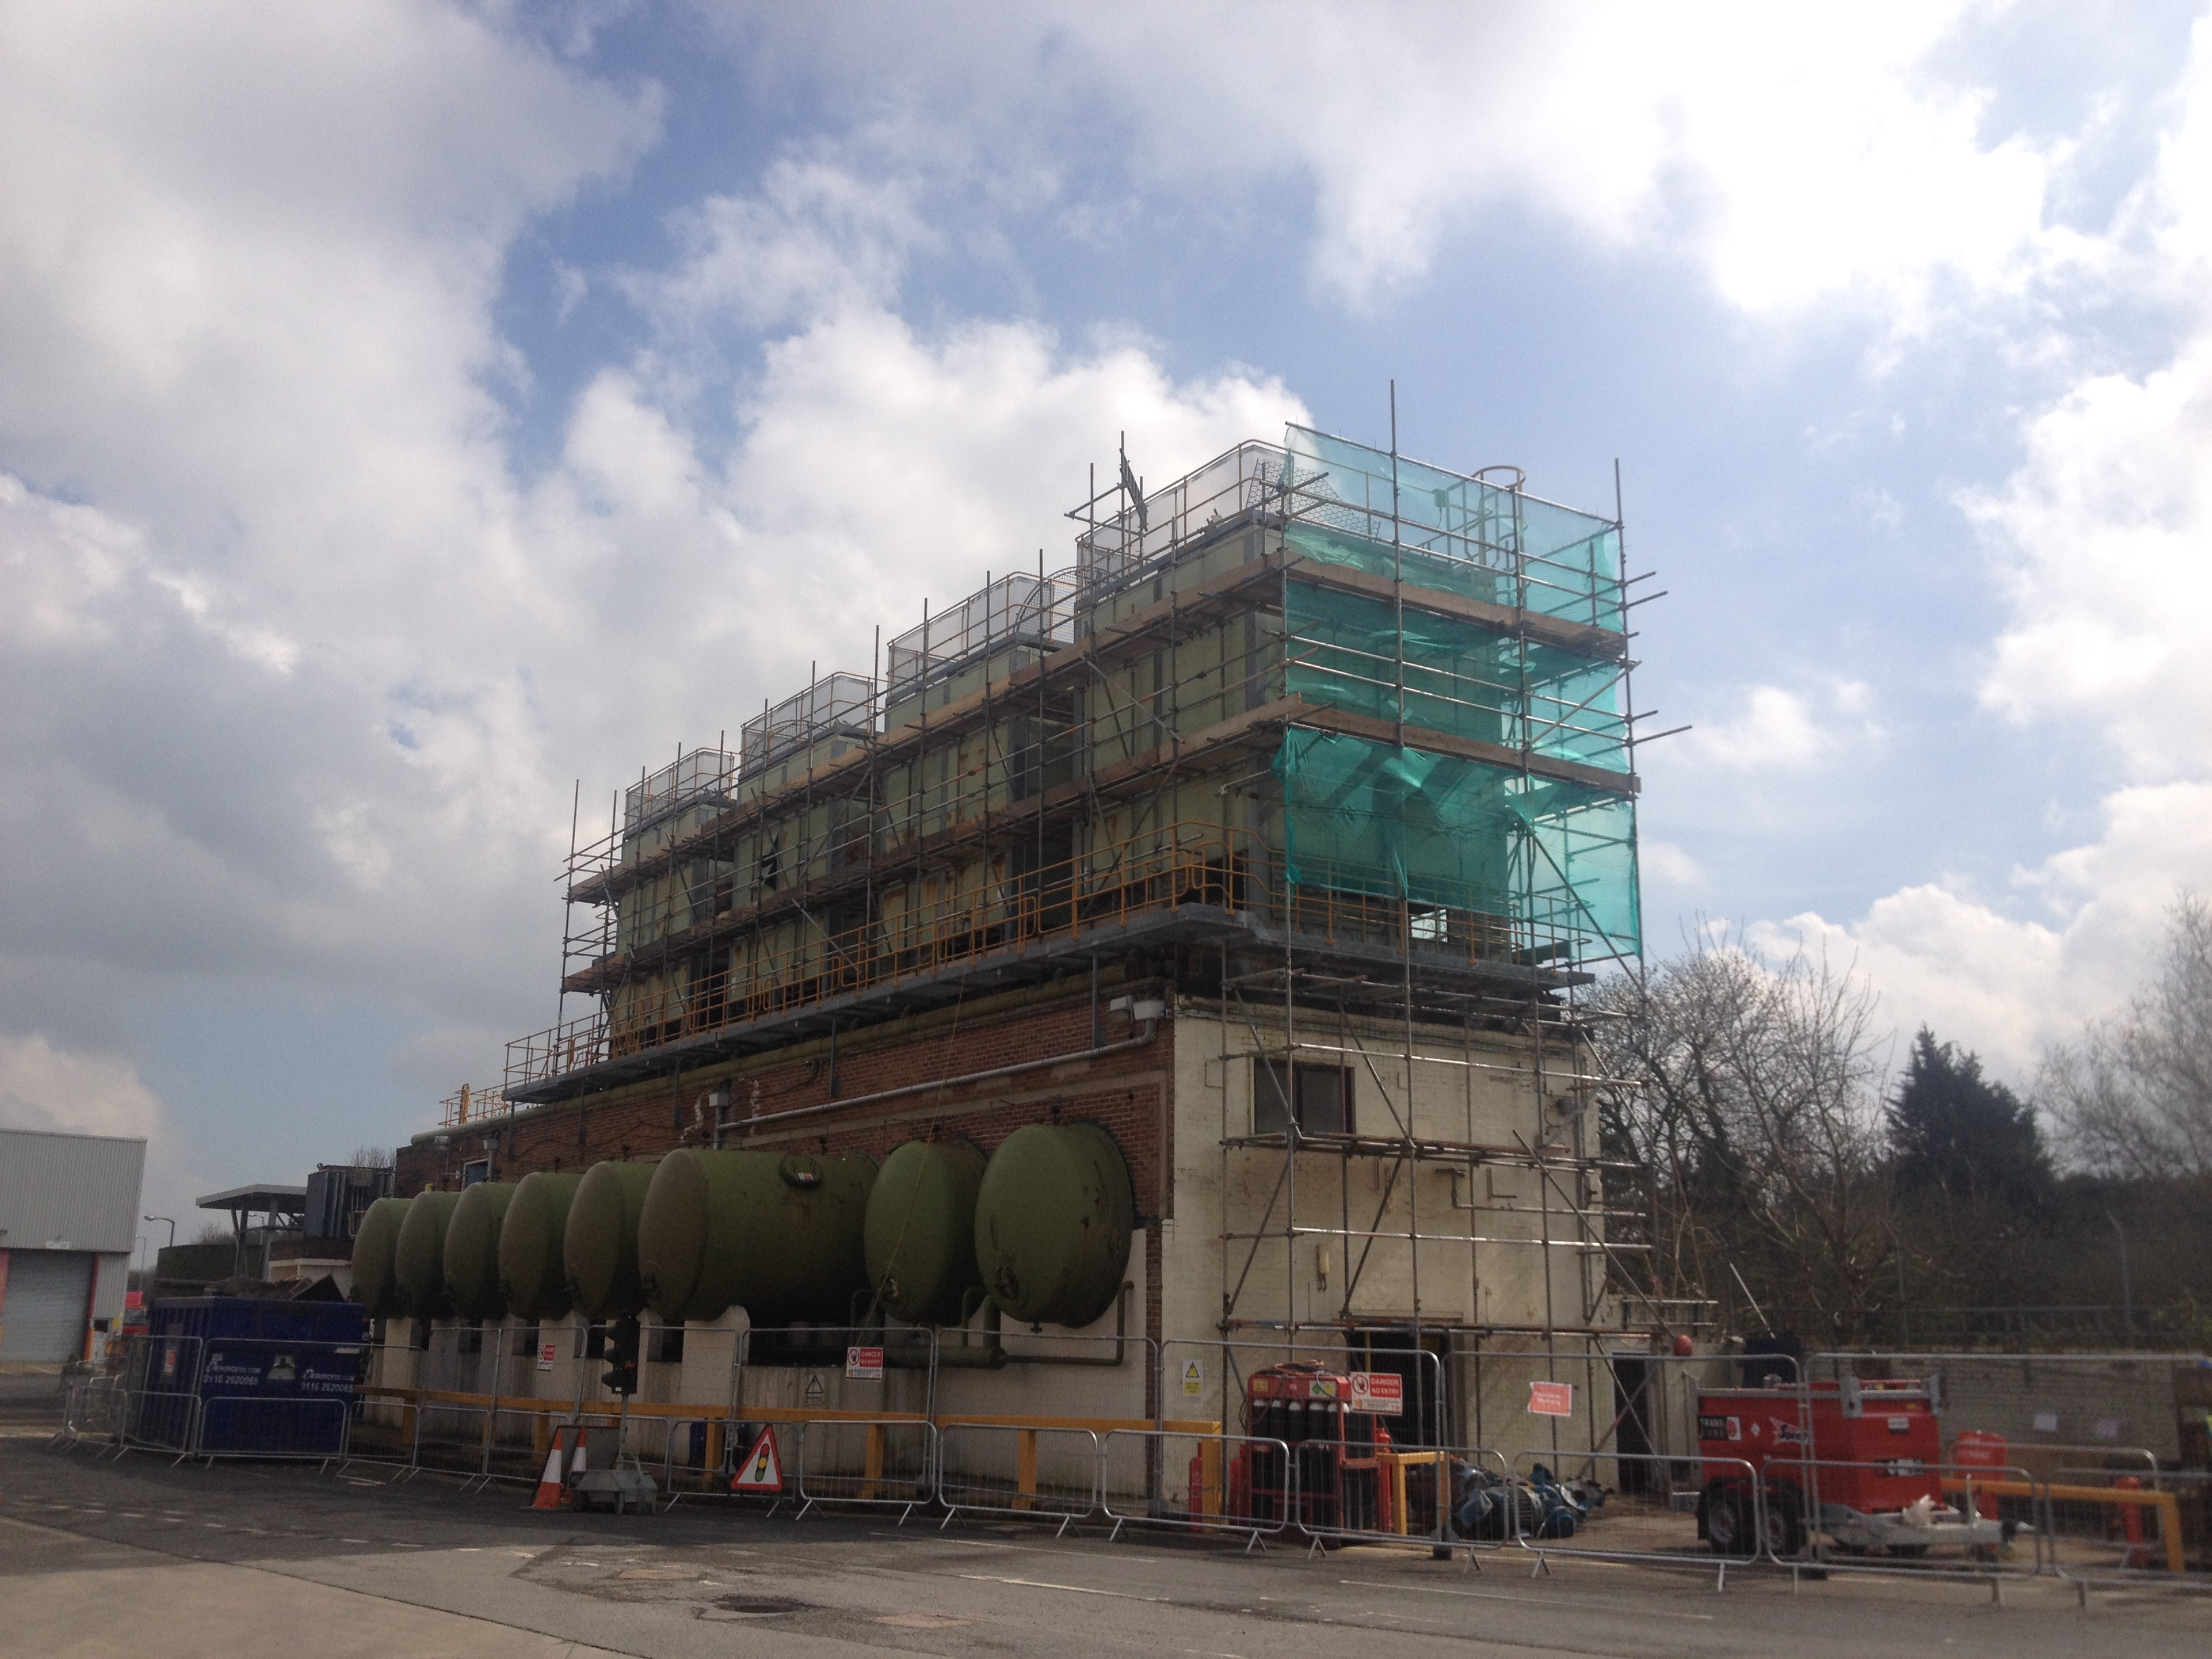 Earls Scaffolding - Independent Design Scaffolding - Mars Petcare - Industrial Scaffolding